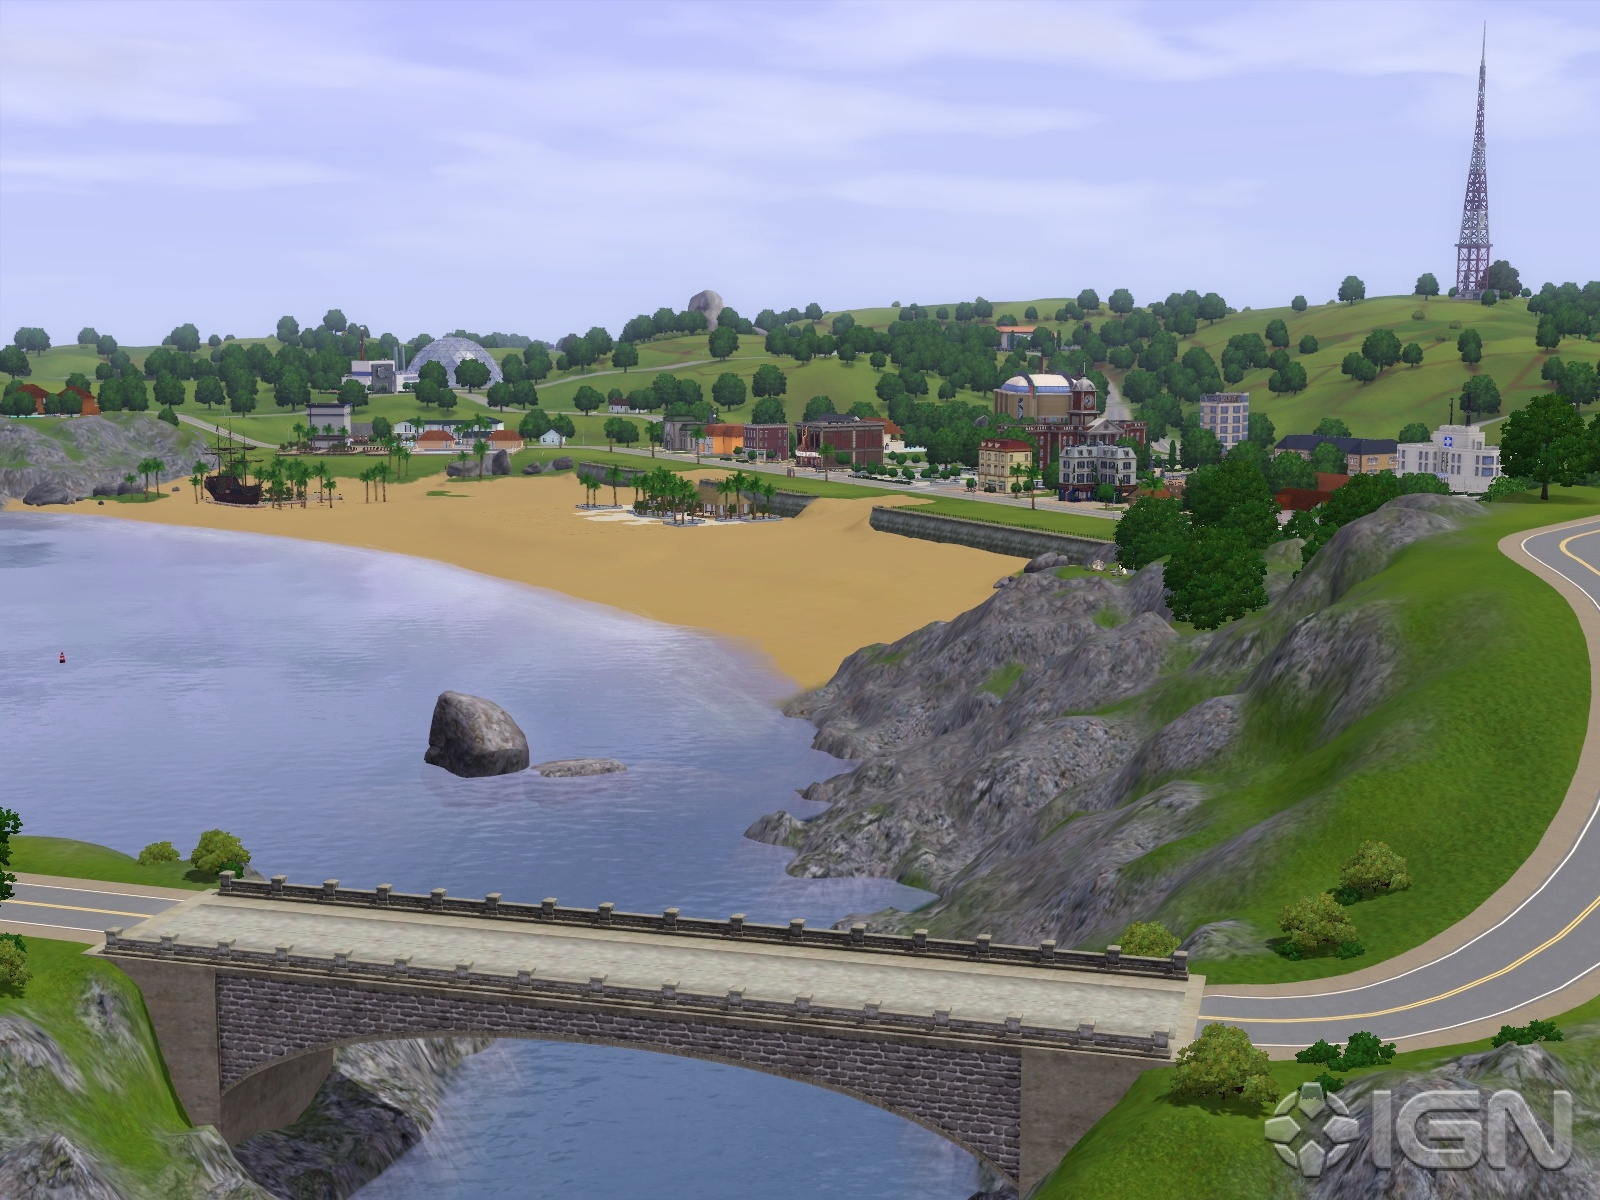 Sims 3 Cri @ - The Sims 3 game fansite | Barnacle Bay: live preview ...